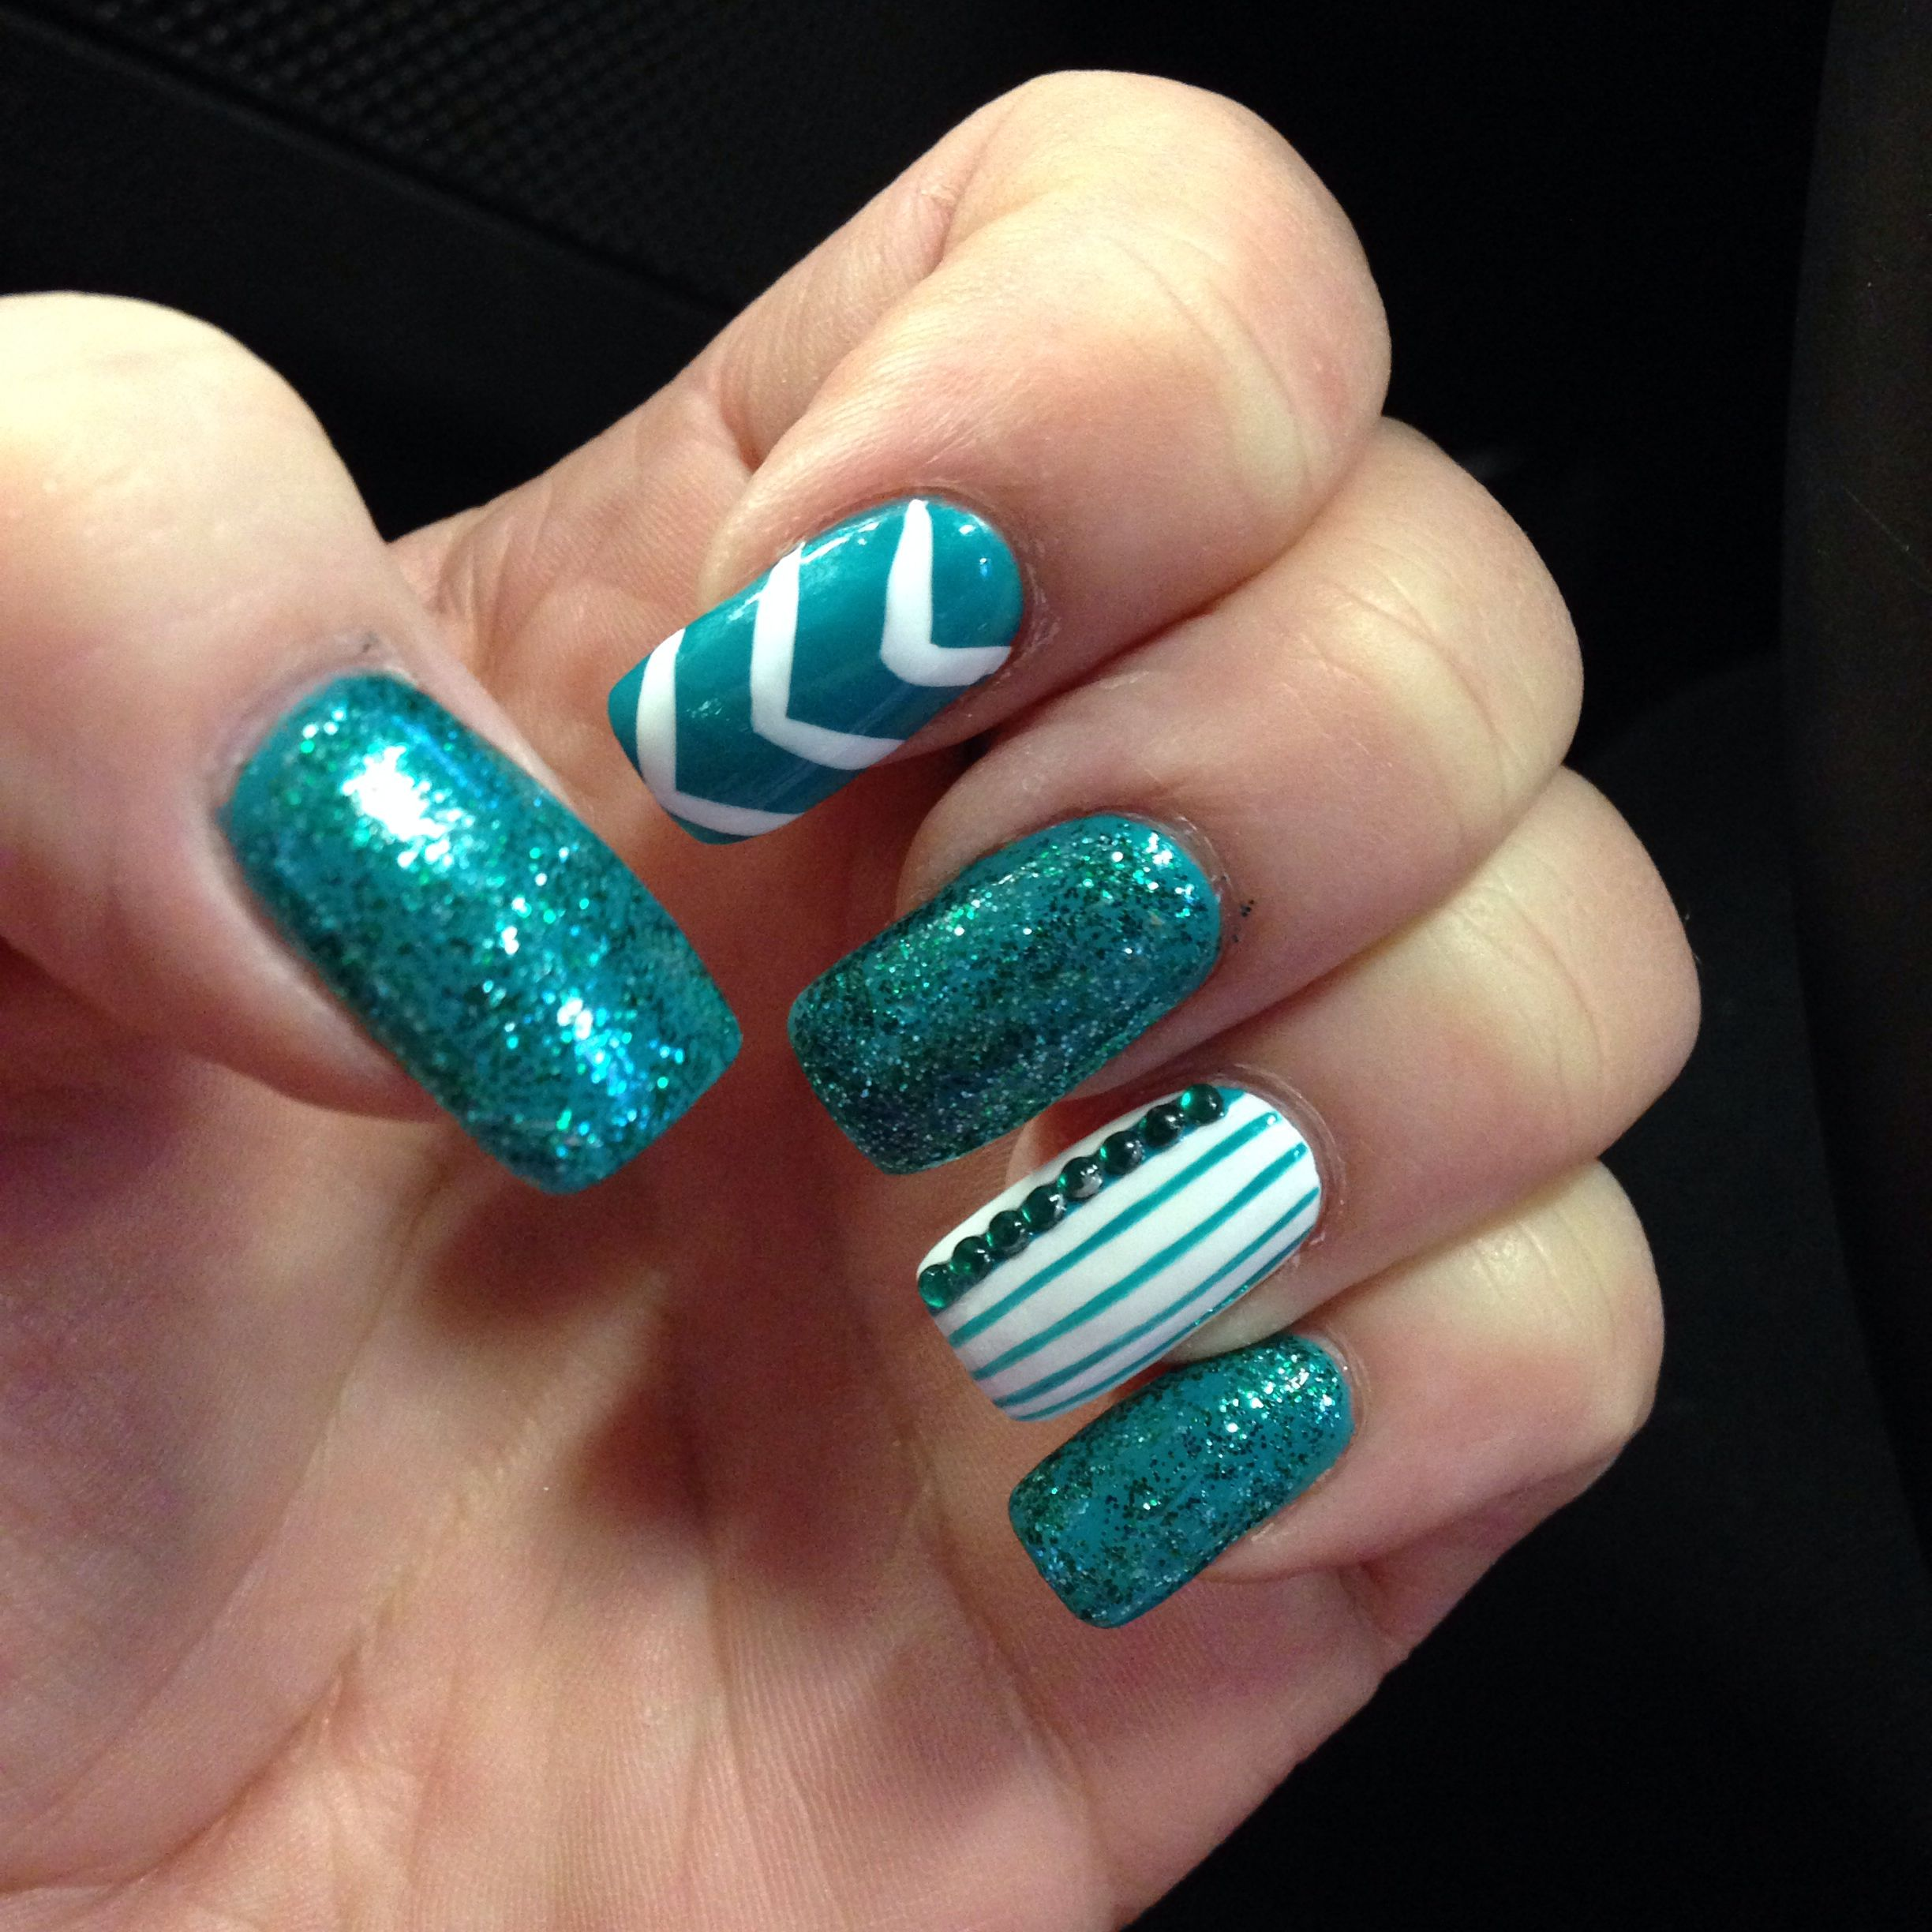 My March nails by Nina\'s nails in Belfair Wa | Nails and pretties ...